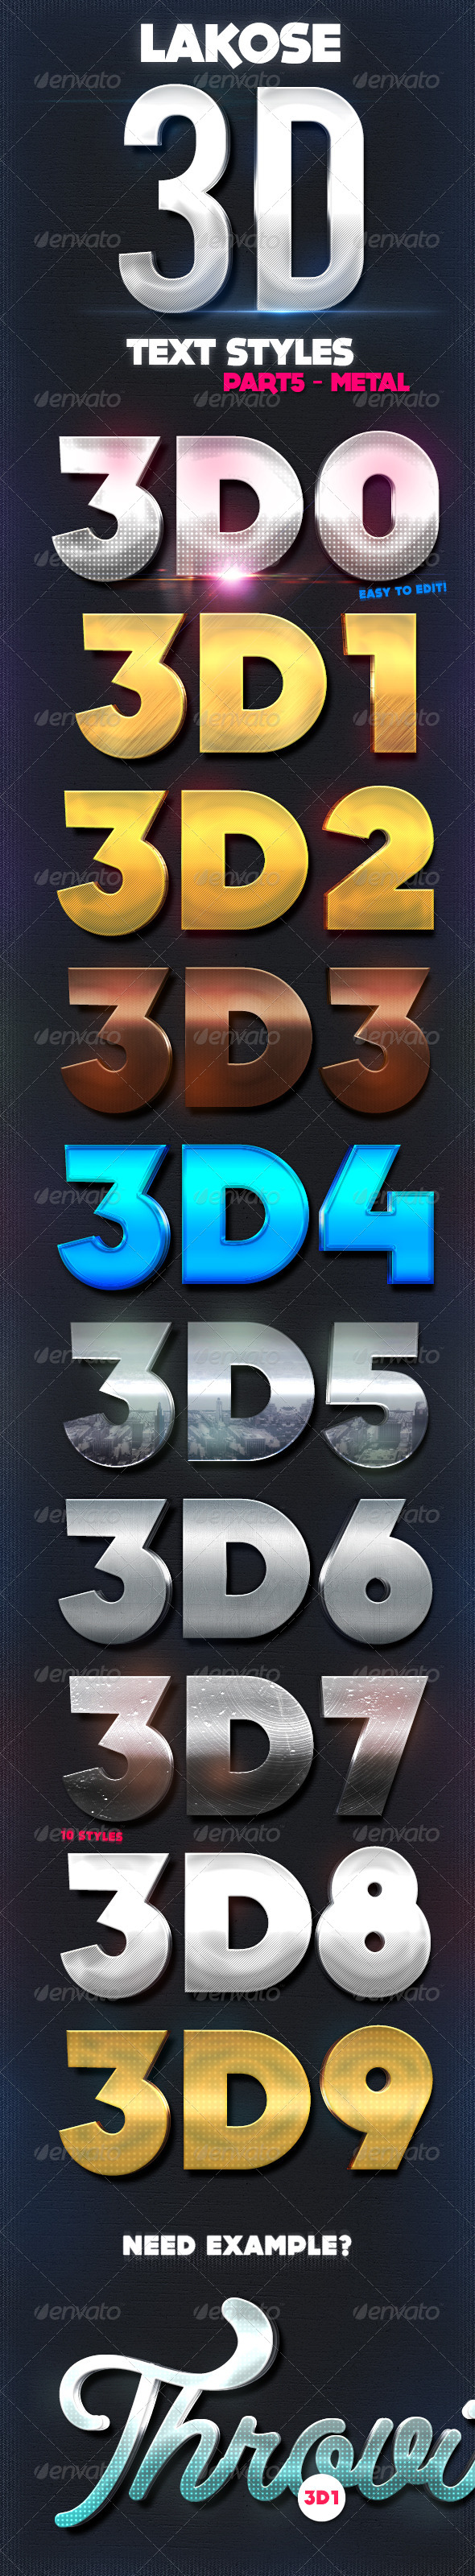 GraphicRiver Lakose 3D Text Styles Part 5 8617276